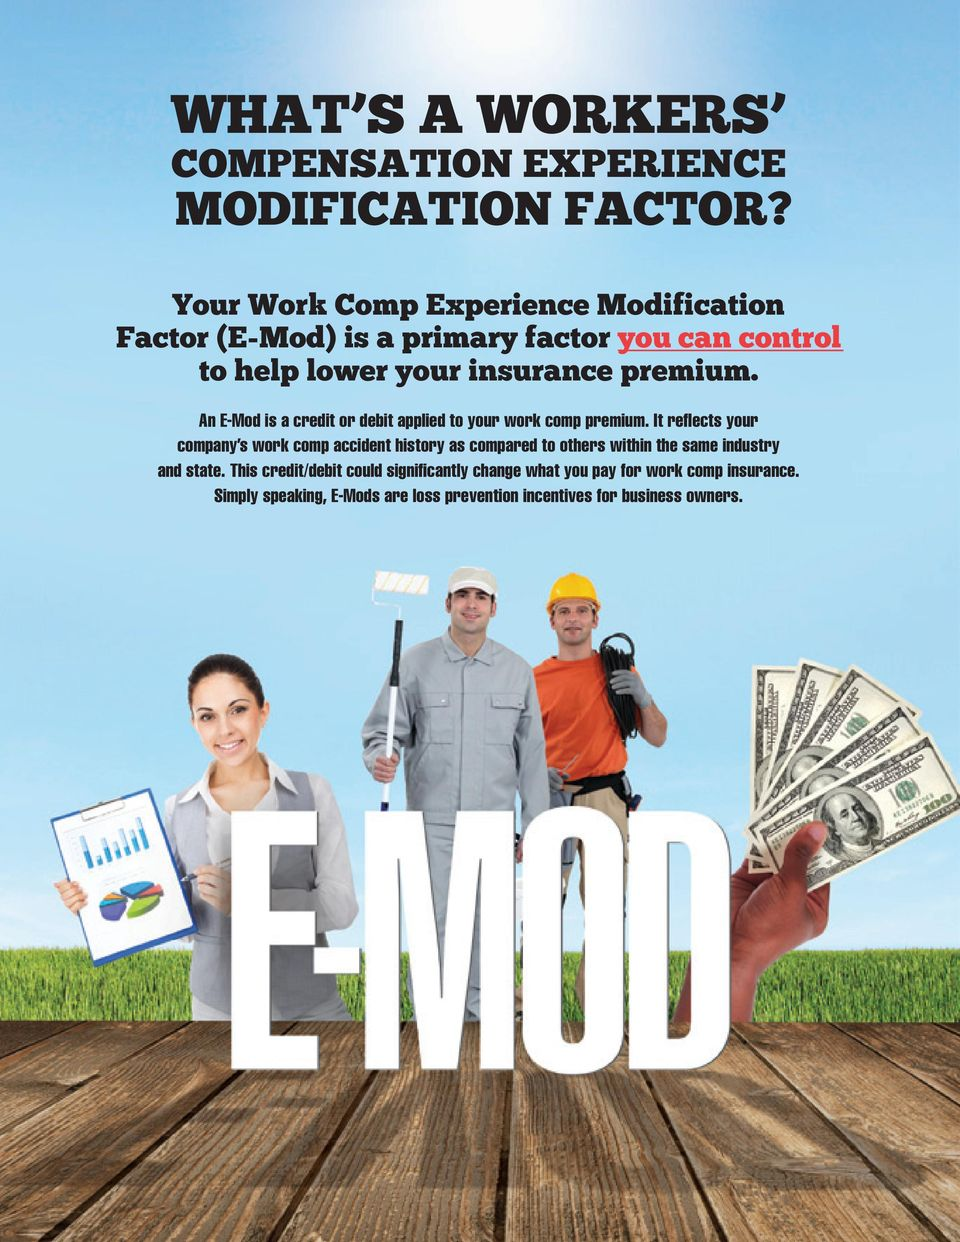 An E-Mod is a credit or debit applied to your work comp premium.